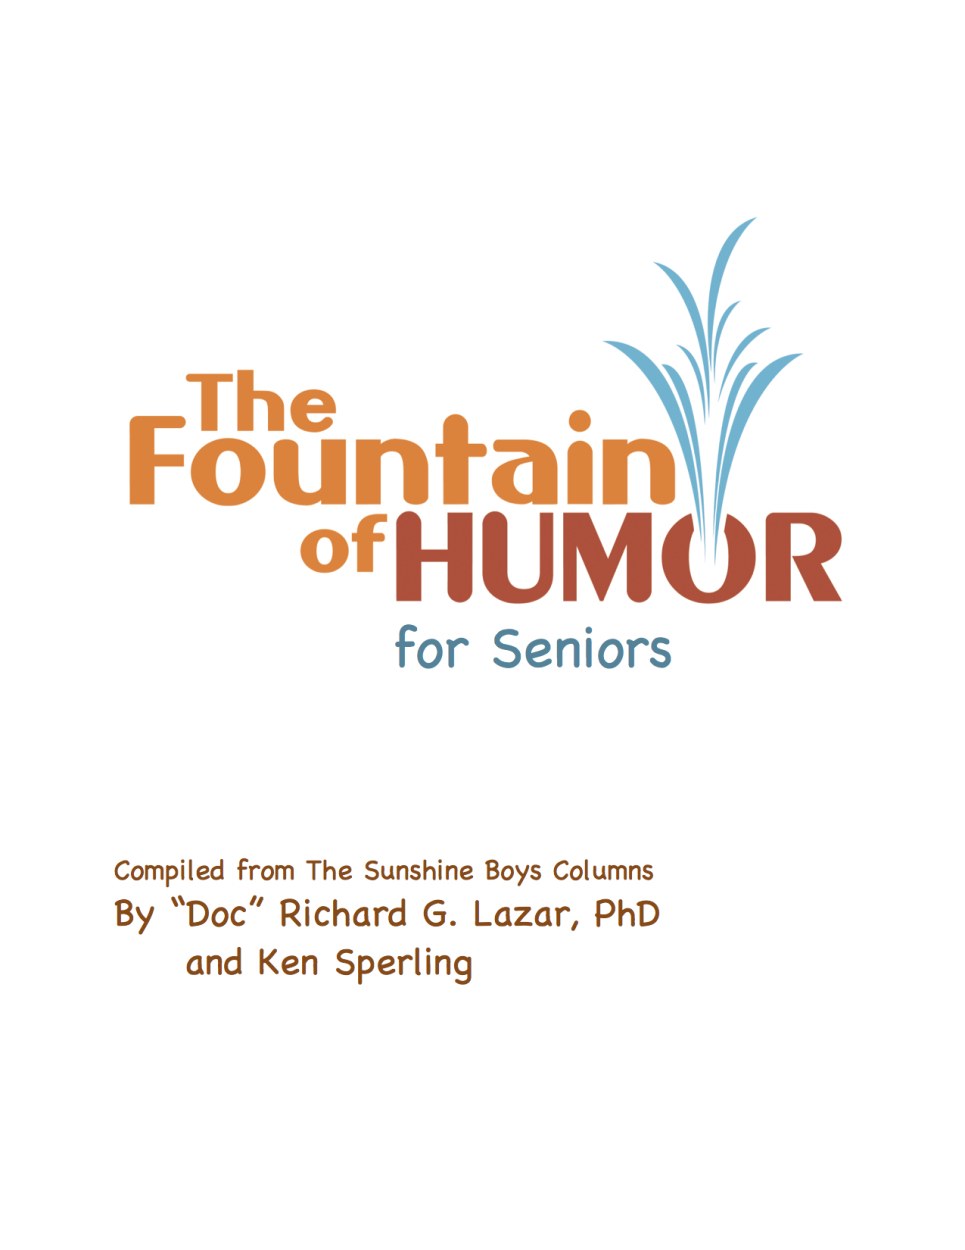 The Fountain of Humor for Seniors By: Richard G. Lazar, PhD